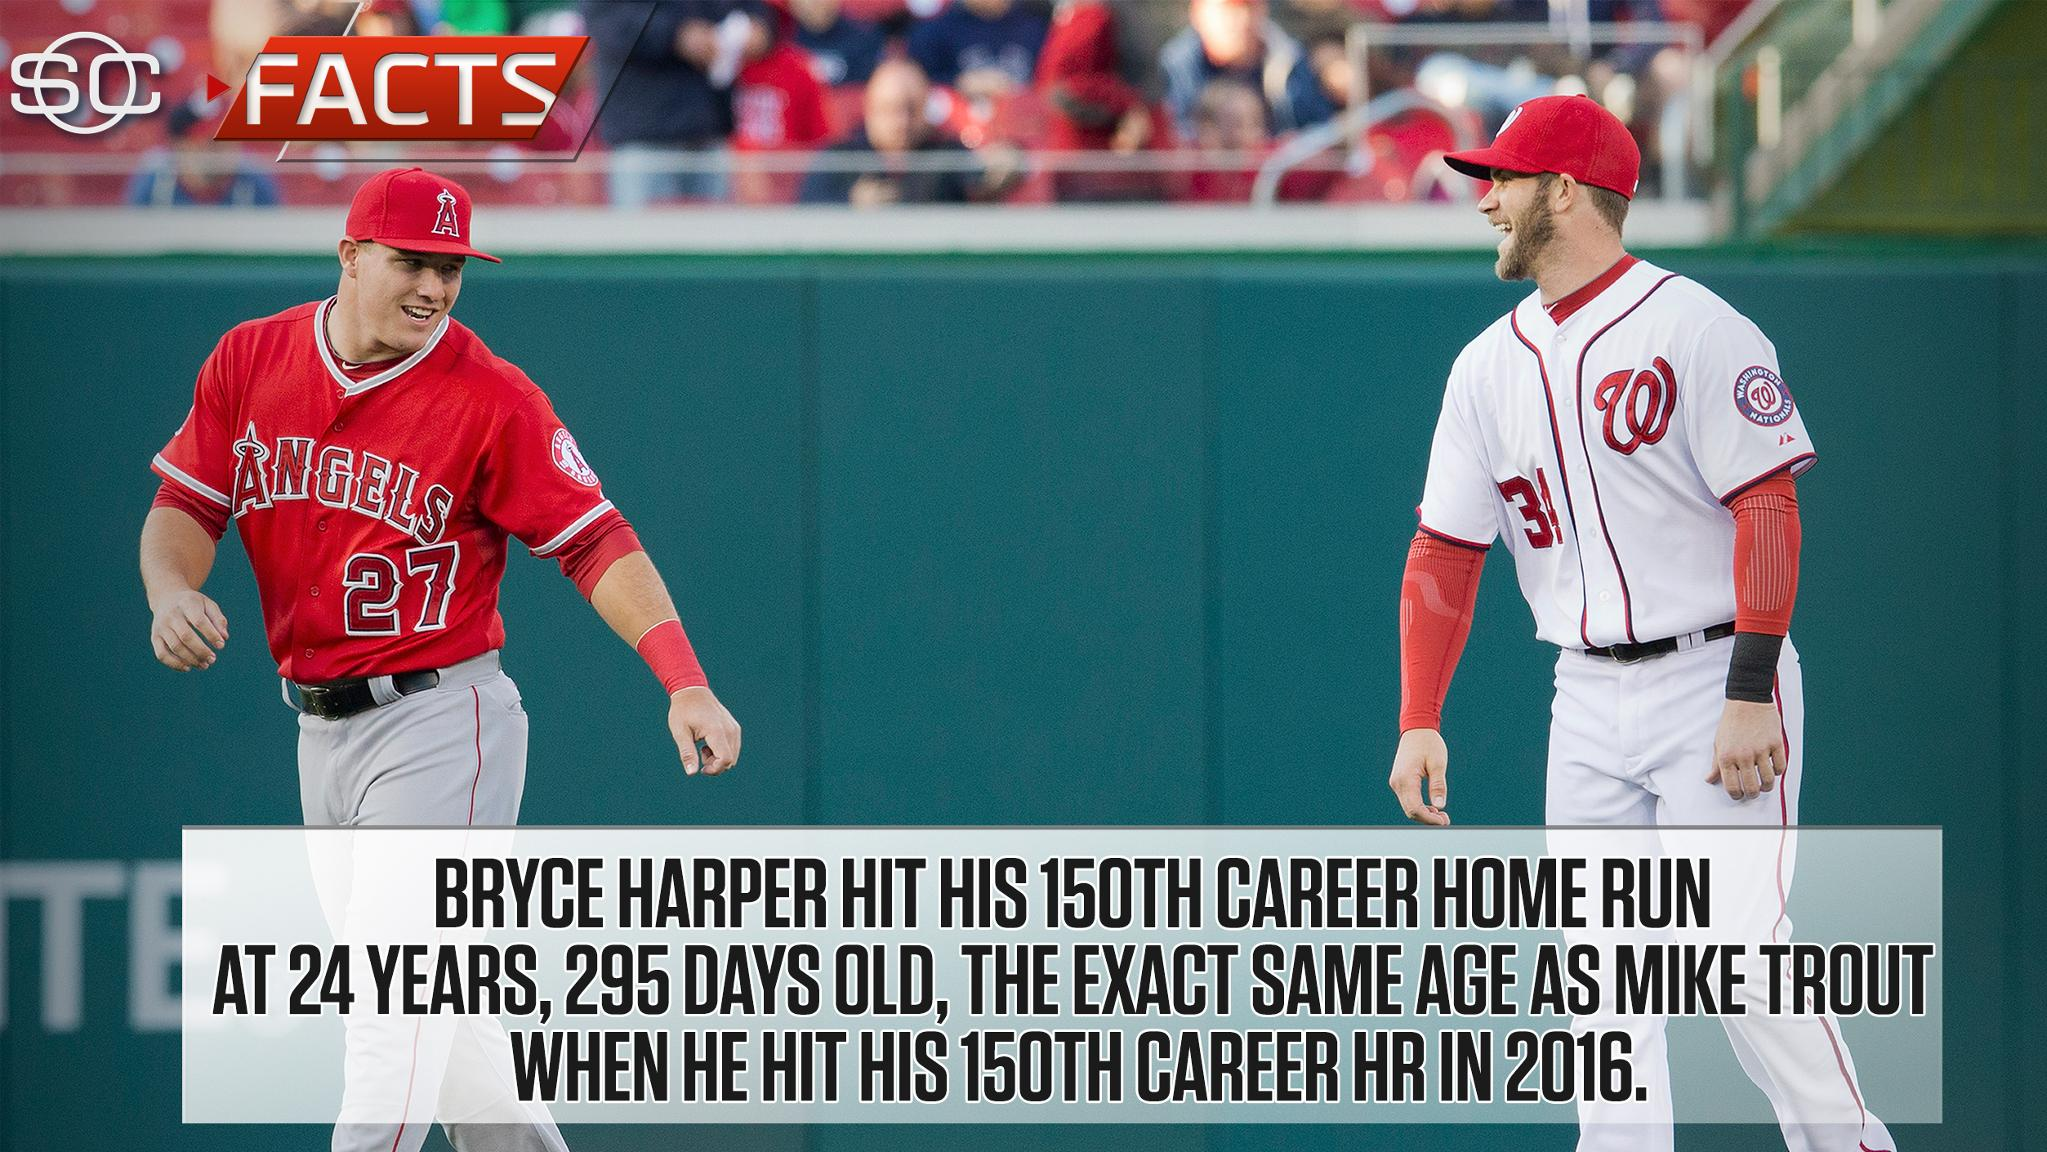 Bryce Harper and Mike Trout have a strange coincidence. #SCFacts https://t.co/ICd0XjC7pc